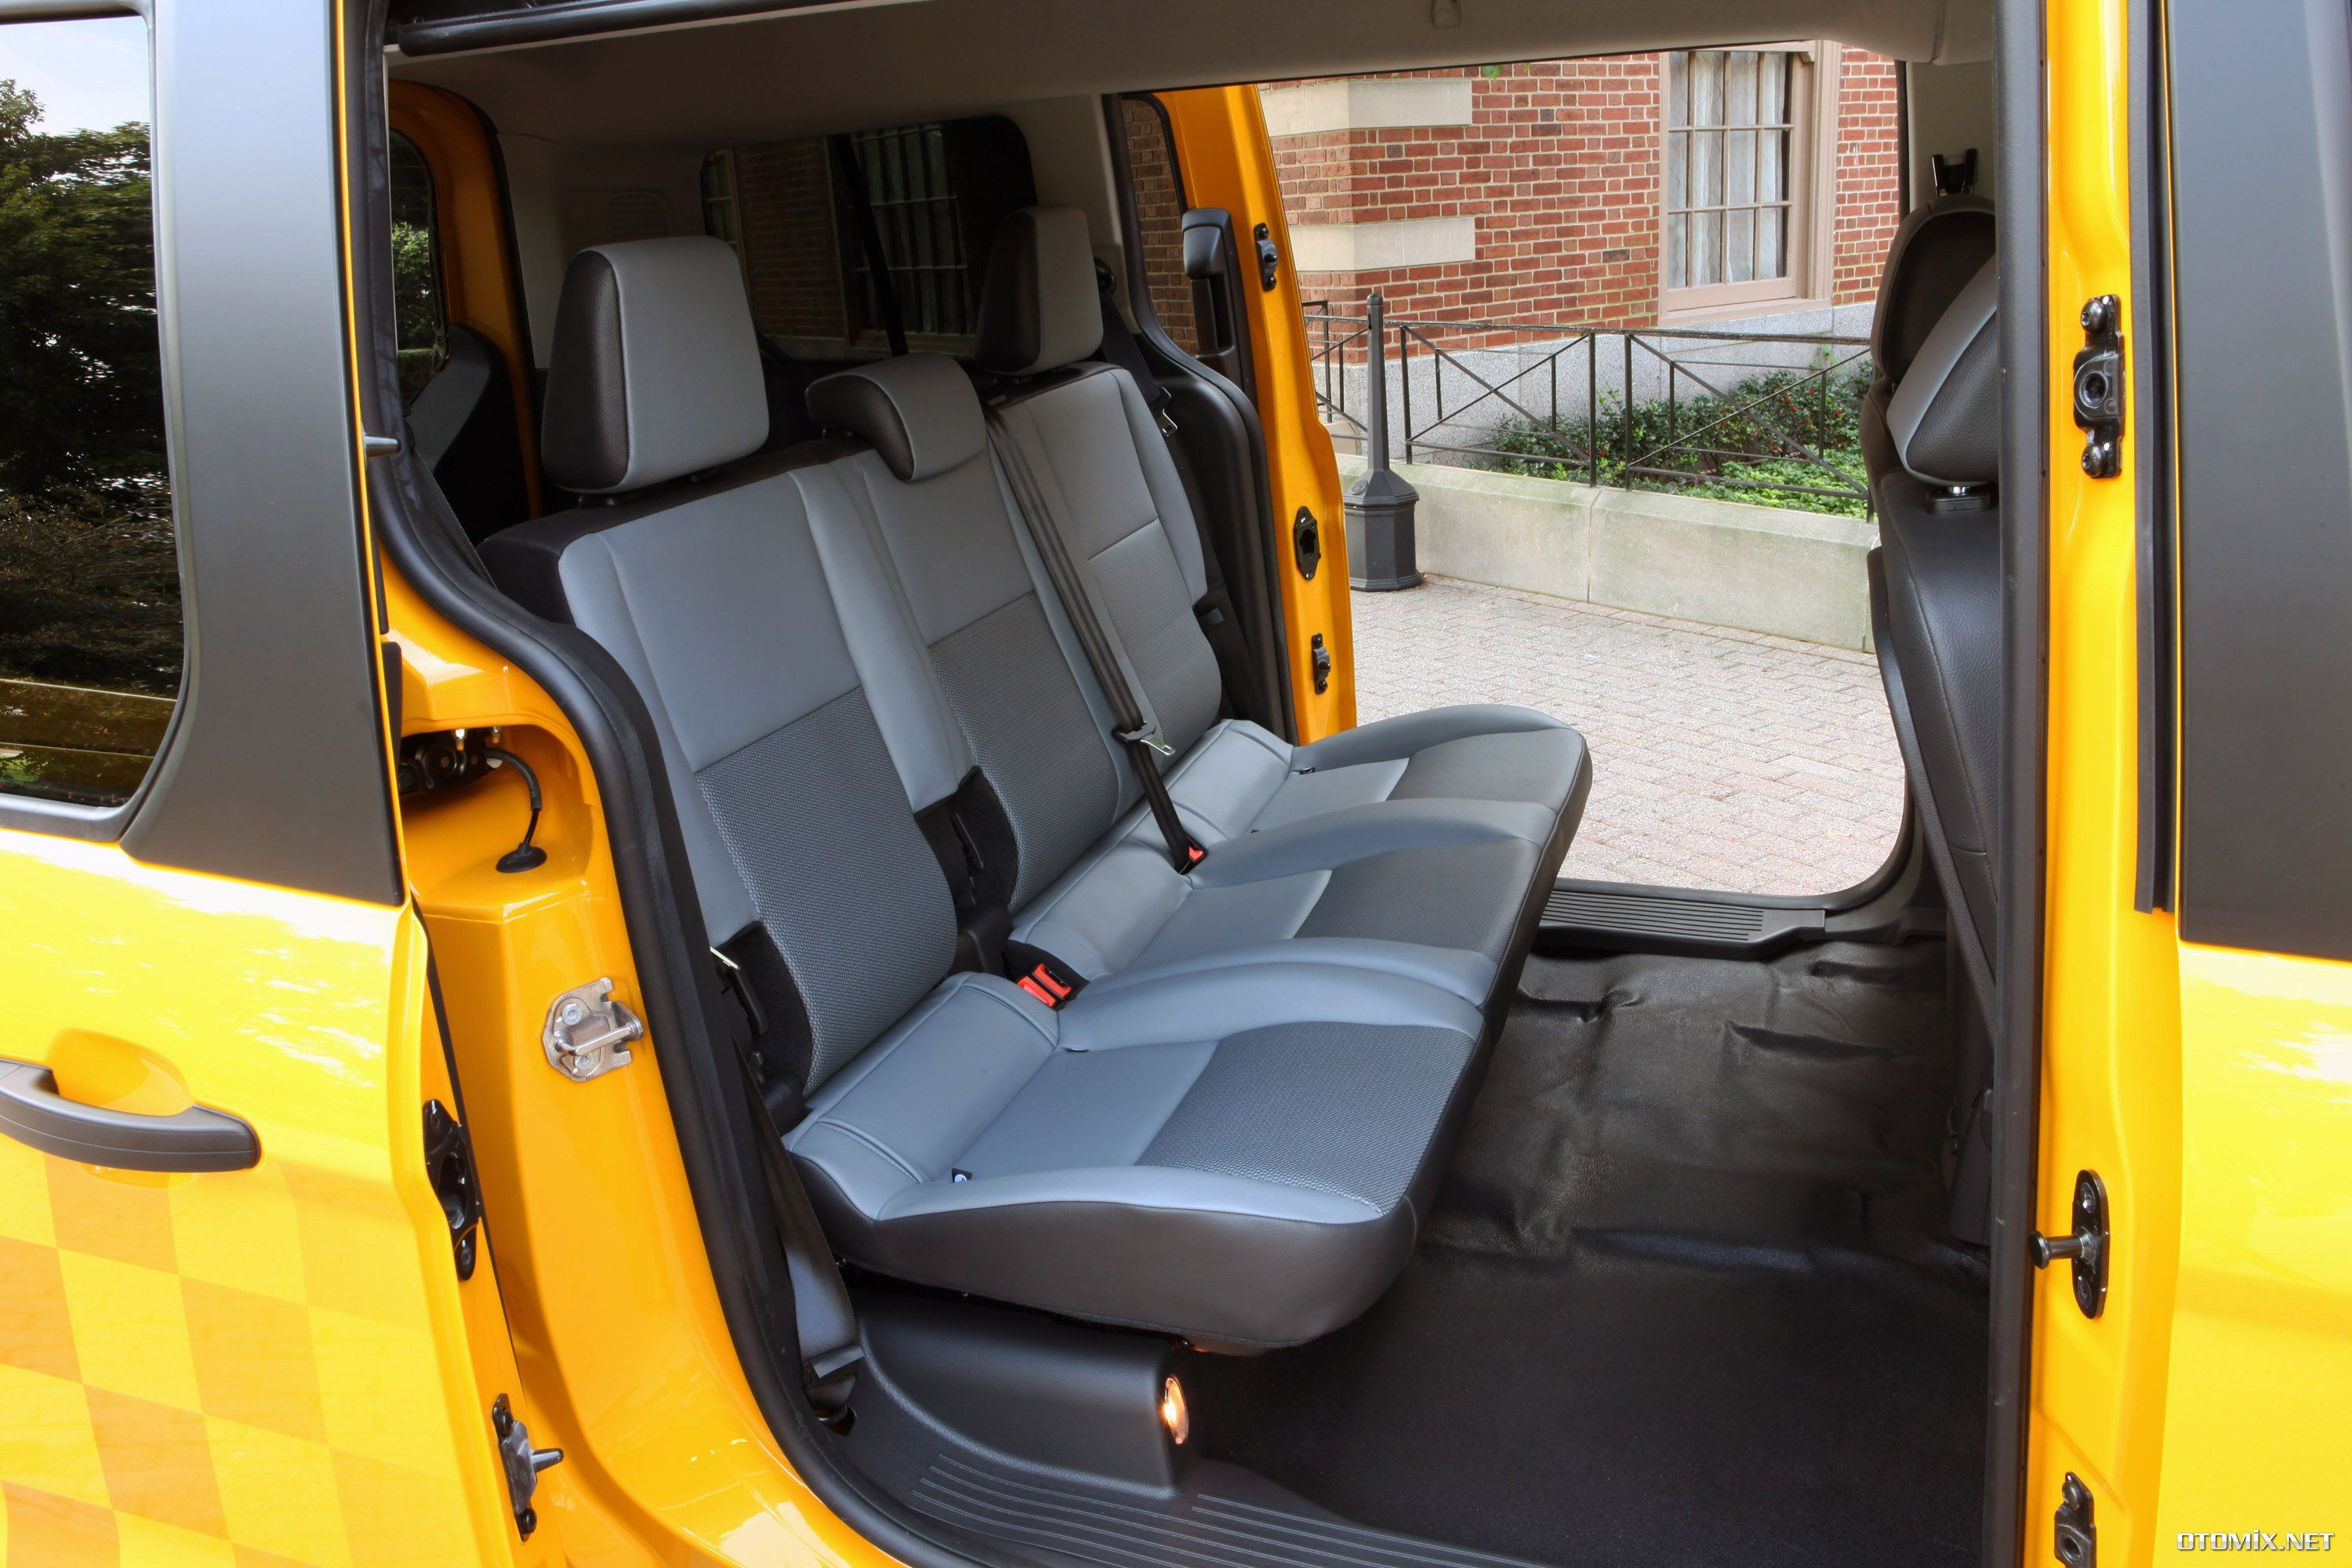 Ford tourneo courier pictures to pin on pinterest - Yeni Ford Tourneo Courier Taksi